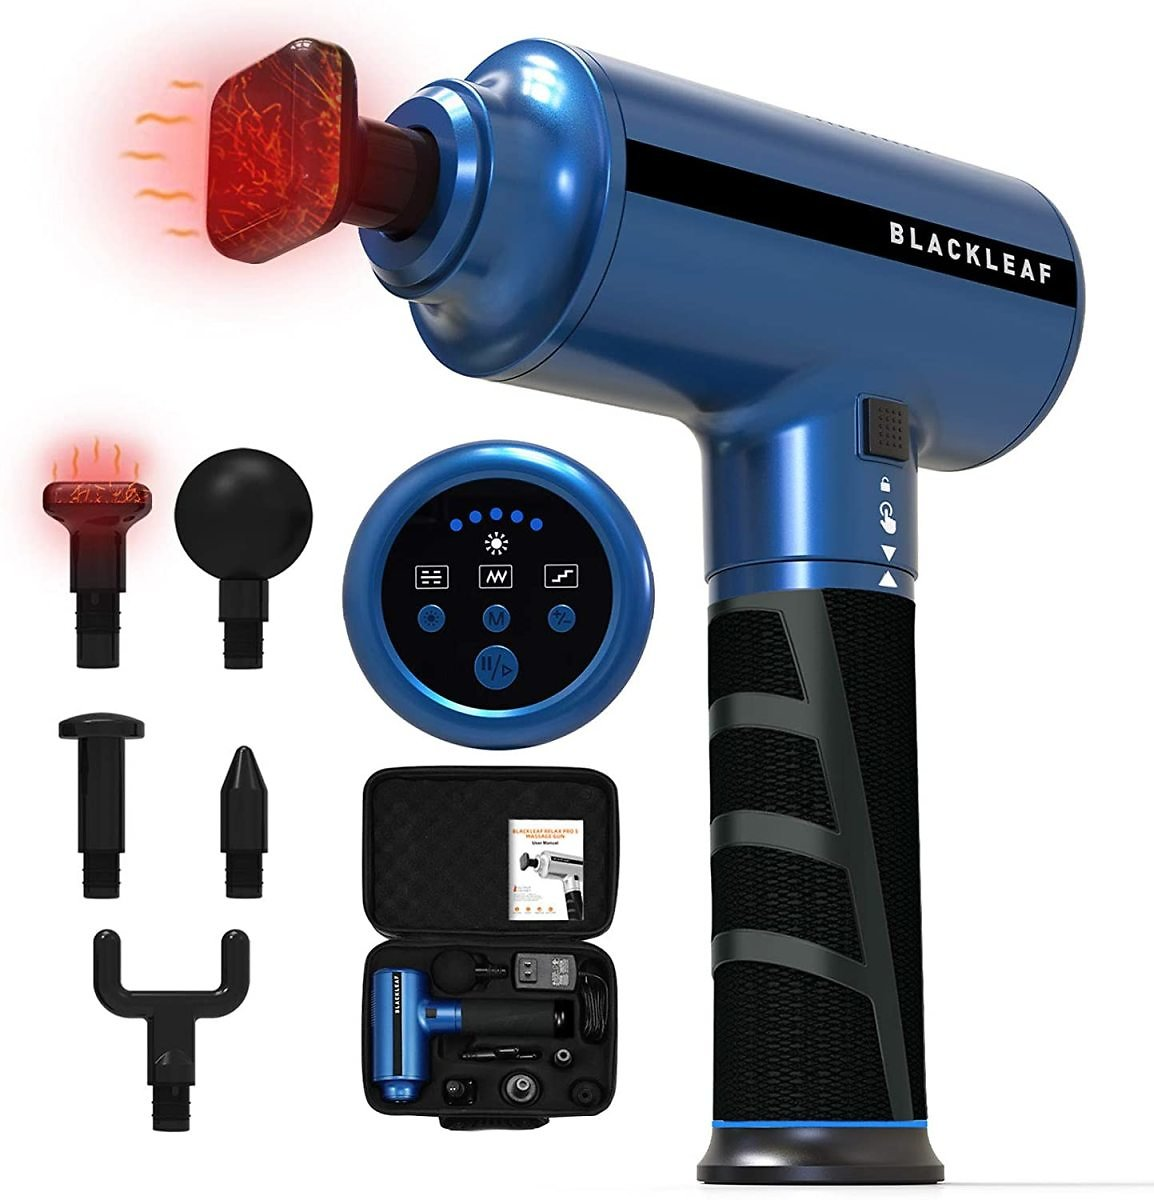 55% Off Heated Massage Gun with 5 Massage Heads $66.64